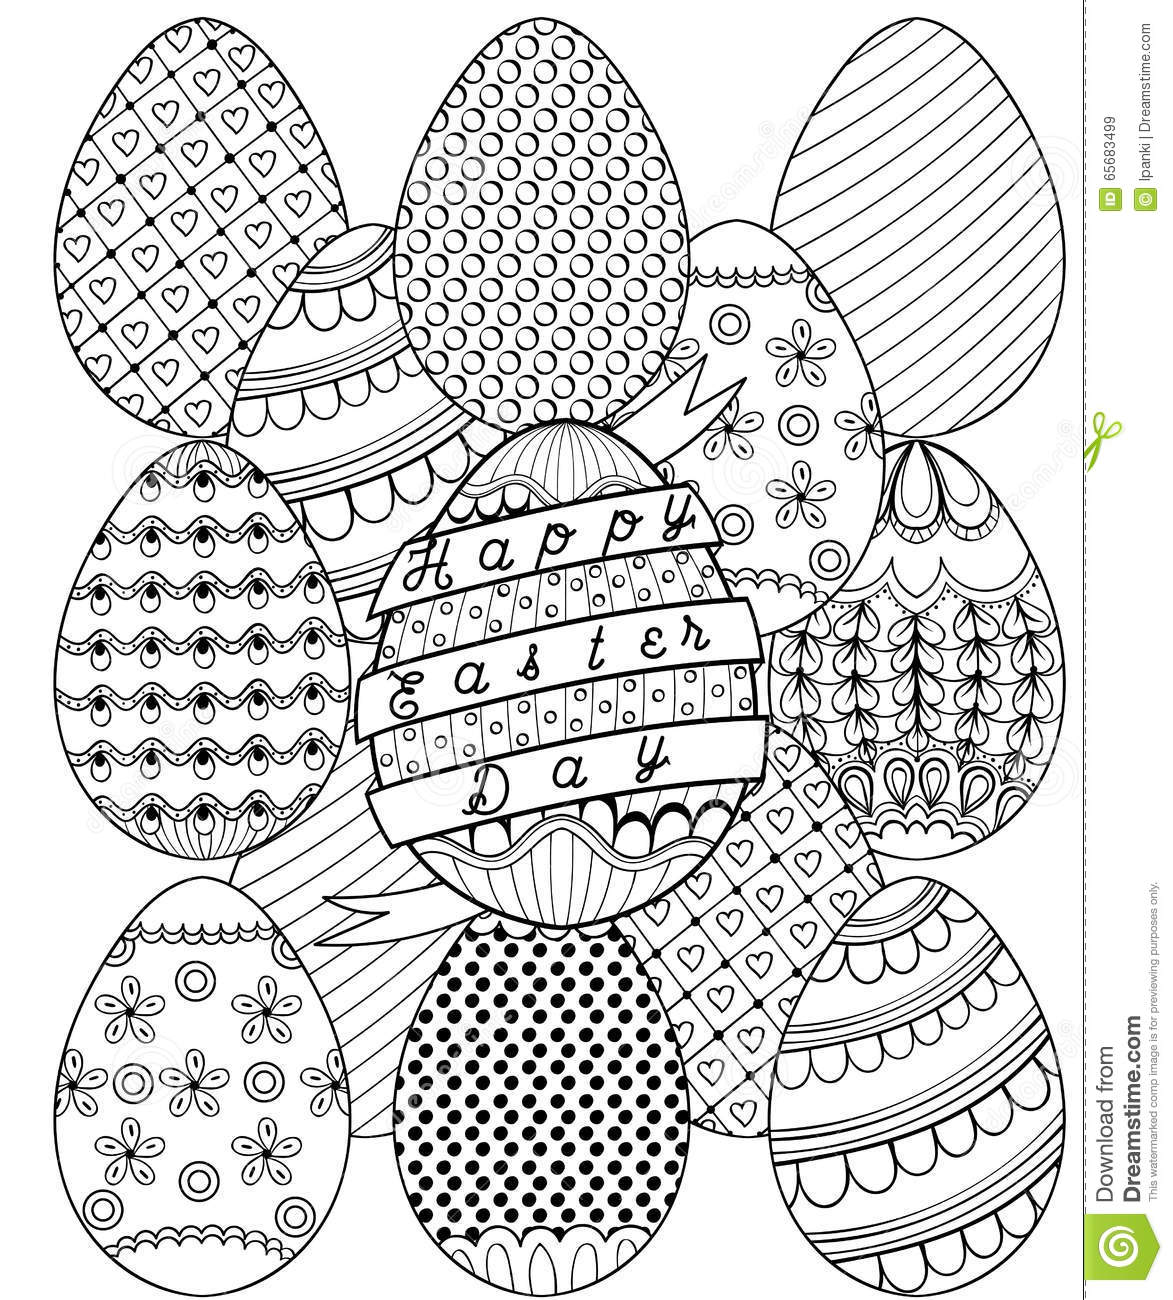 Hand Drawn Artistic Easter Eggs Pattern For Adult Coloring Page